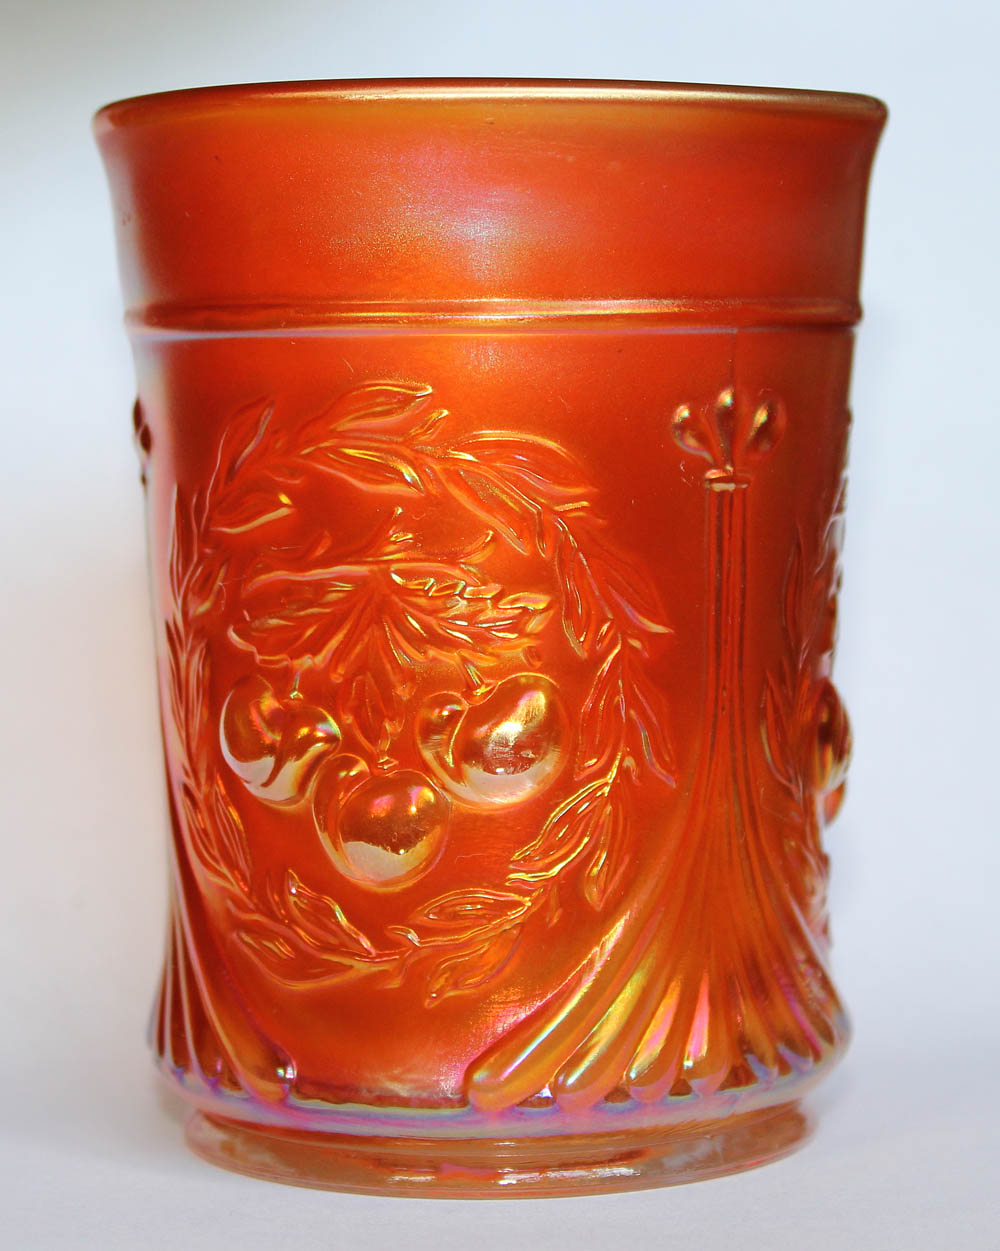 Wreathed Cherry tumbler, marigold